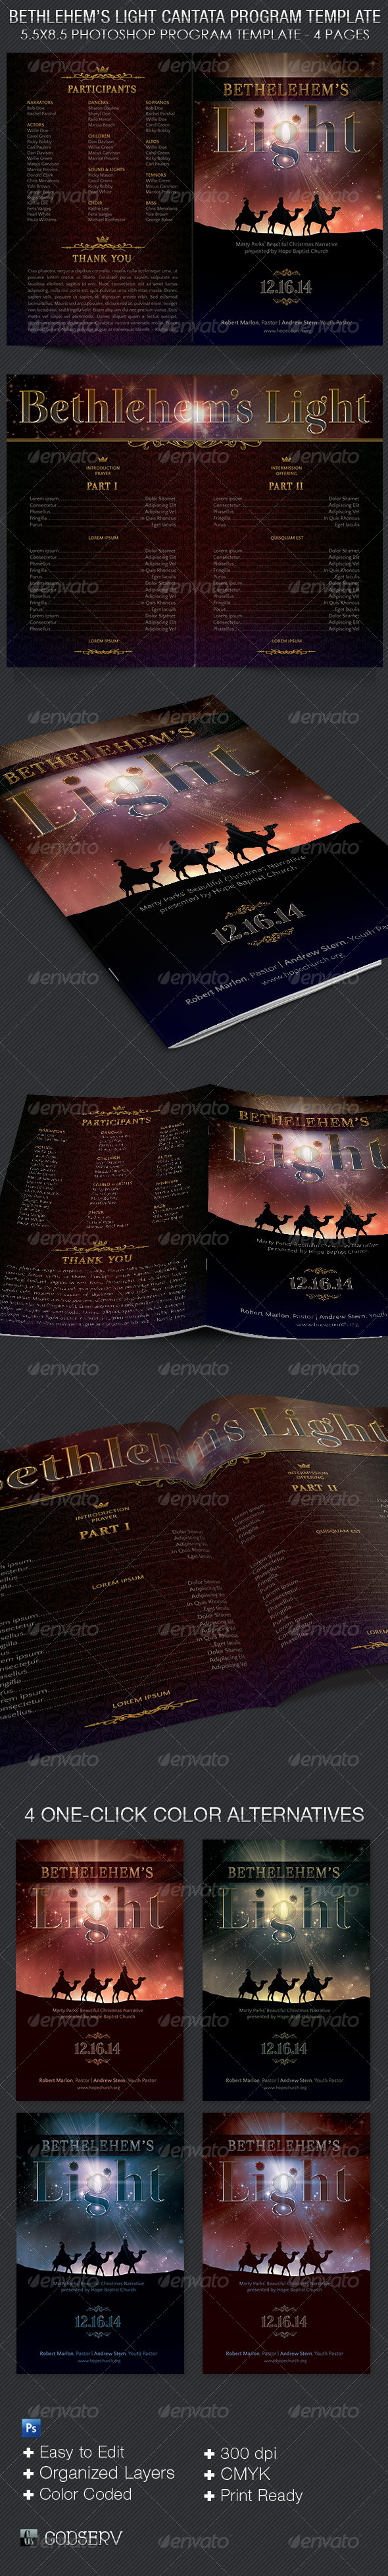 Bethlehem's Light Cantata Program Template